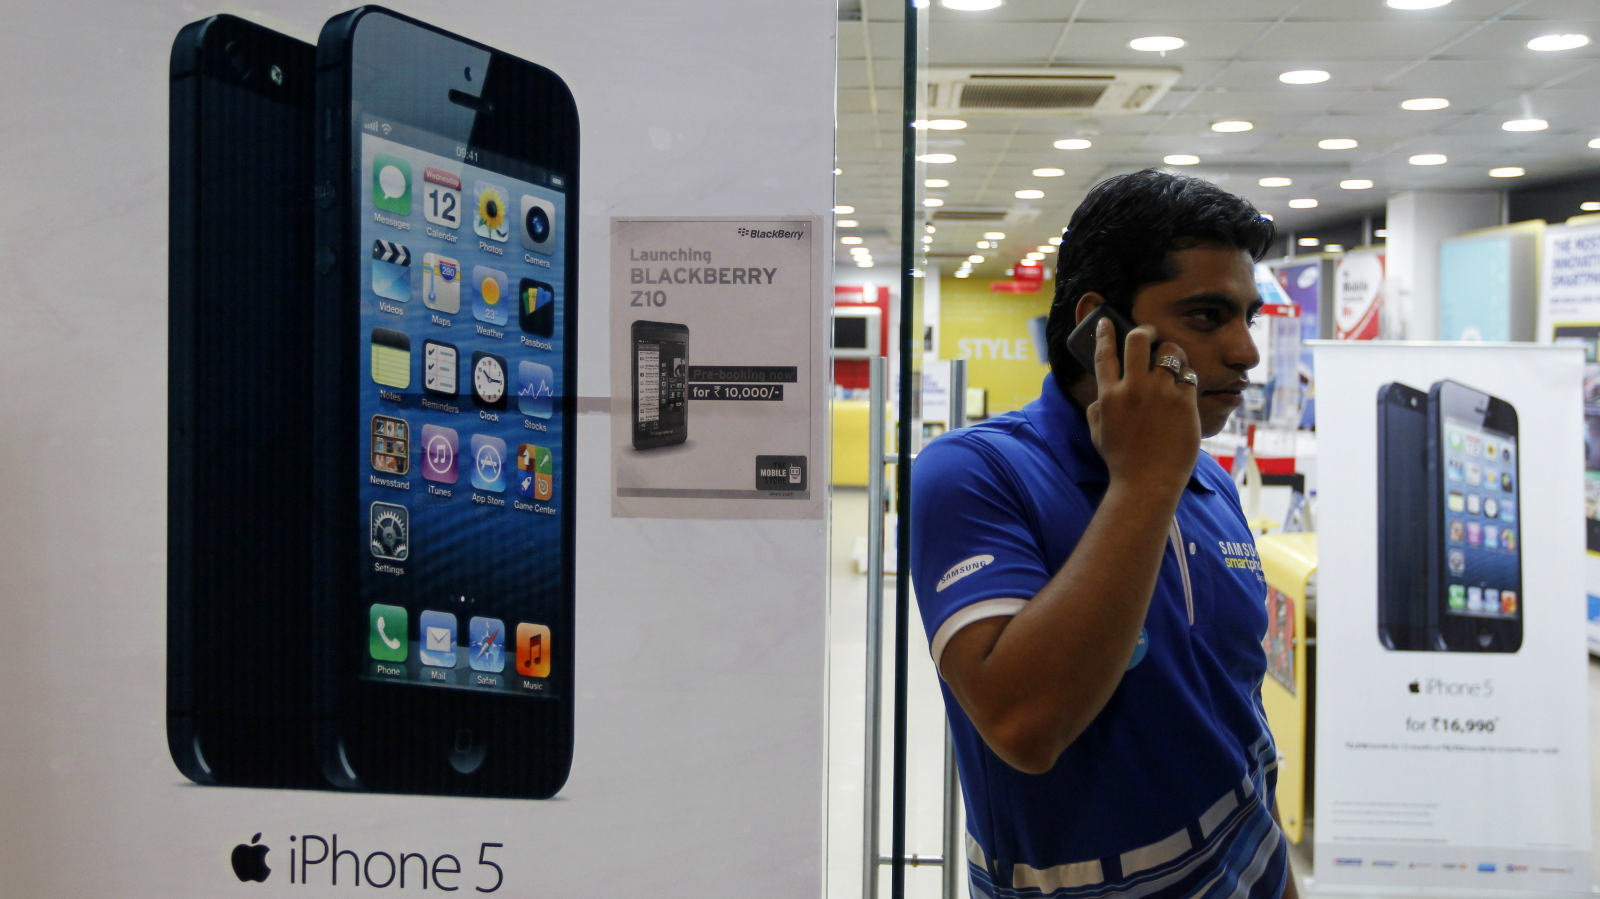 A man speaks on his mobile phone while standing next to posters advertising an Apple iPhone 5 and Blackberry Z10 in Ahmedabad February 22, 2013. More than four years after it started selling iPhones in India, Apple Inc is now aggressively pushing the iconic device through instalment payment plans that make it more affordable, a new distribution model and heavy marketing blitz. The result: iPhone shipments to India between October and December of 2012 nearly tripled to 250,000 units from 90,000 in the previous quarter, according to an estimate by Jessica Kwee, a Singapore-based analyst at consultancy Canalys. Picture taken February 22, 2013